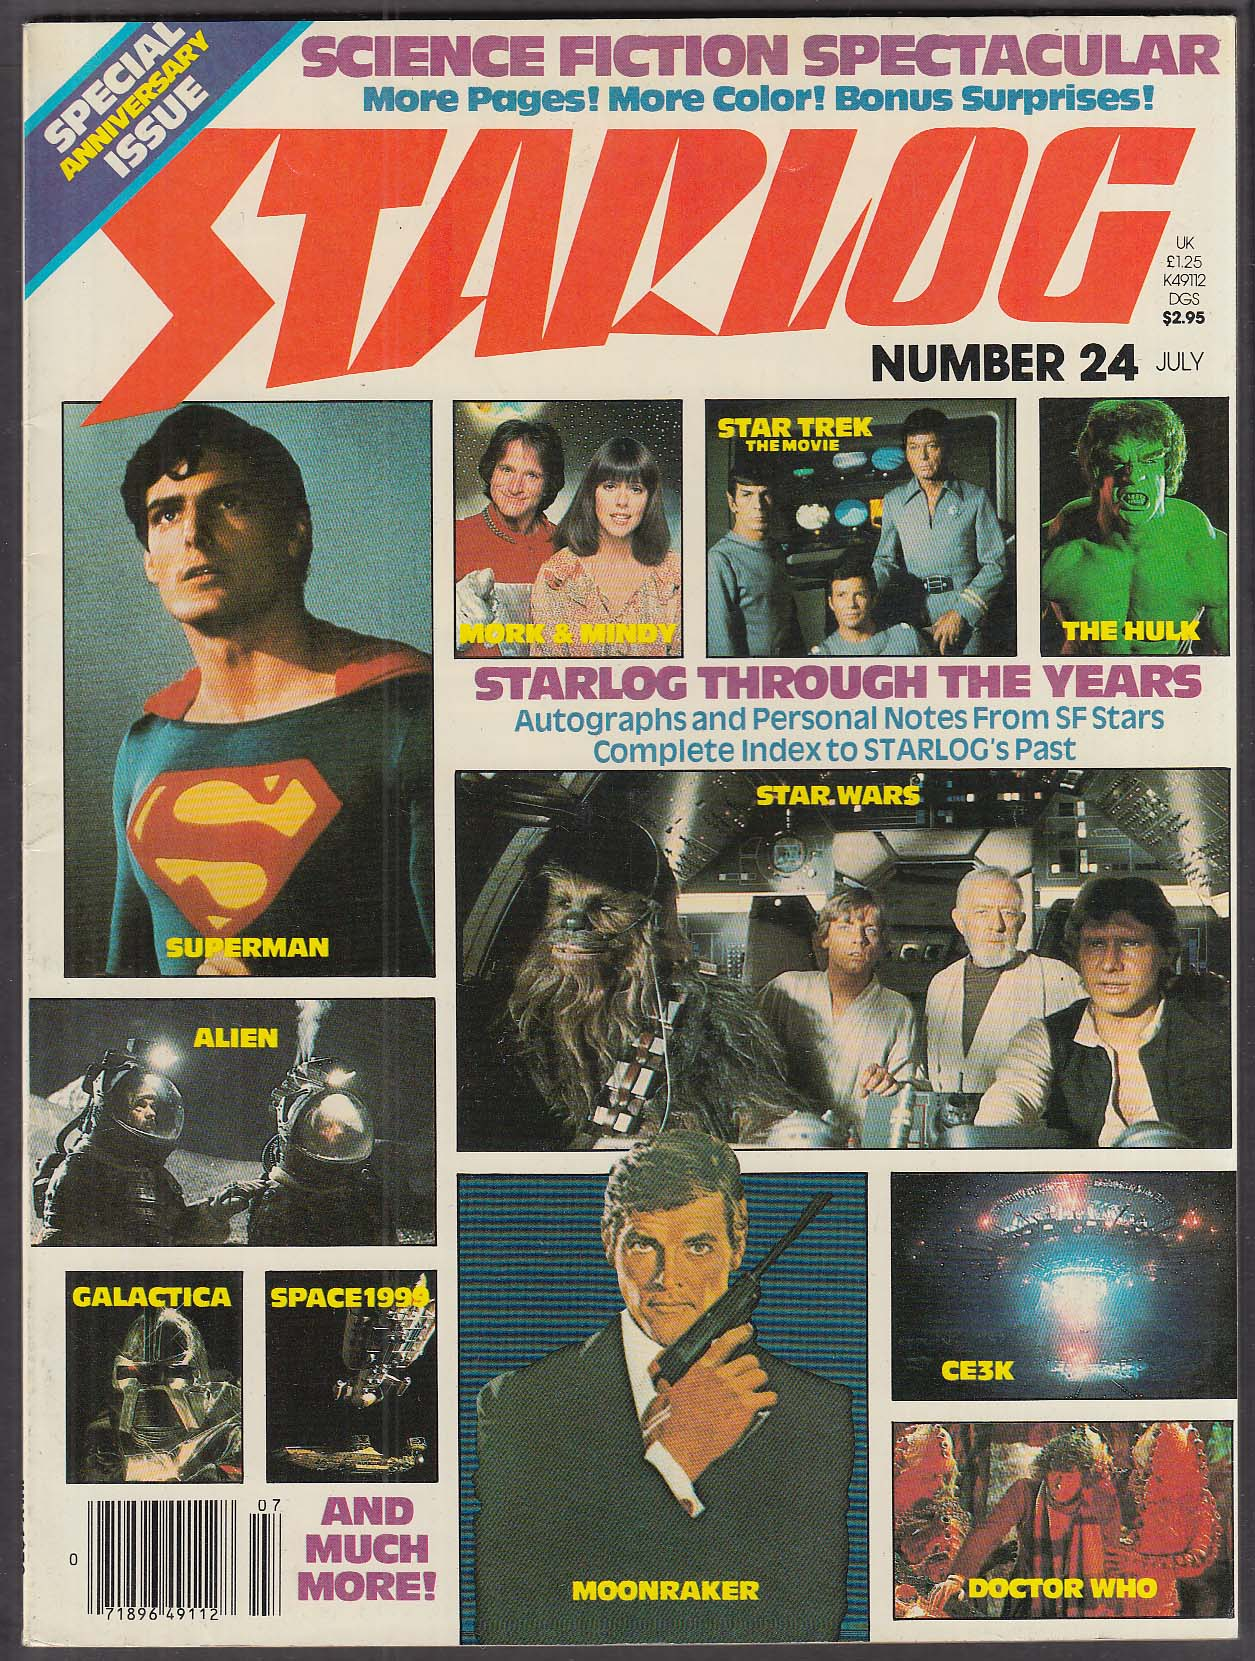 STARLOG #24 Star Trek William Shatner Leonard Nimoy Superman Alien Dr Who 7 1979